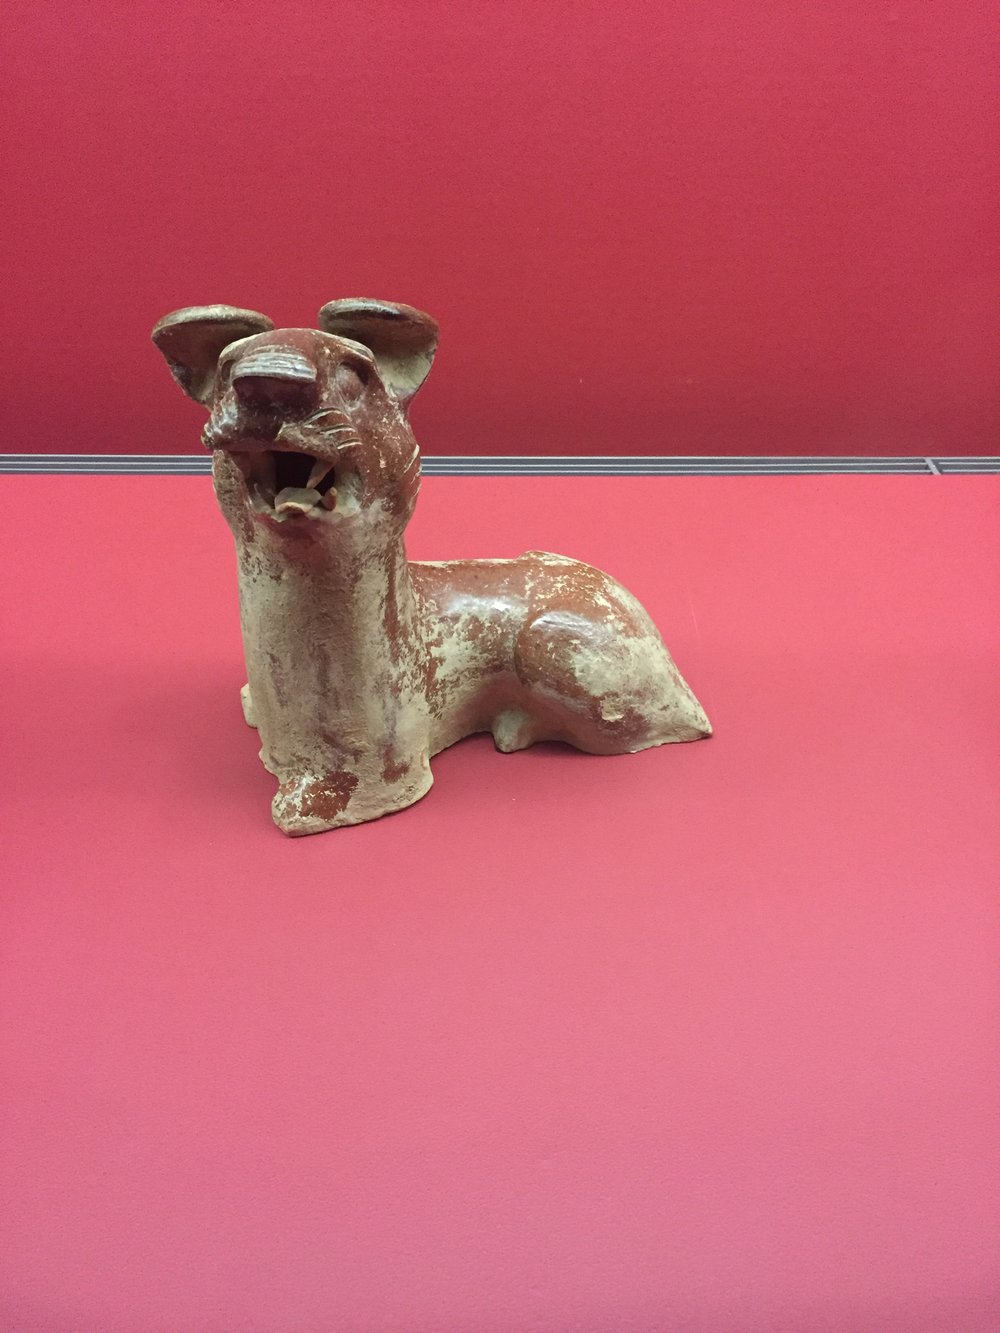 Glazed pottery from the Han dynasty (206 BCE to 220 CE). Yeah, that's a dog.